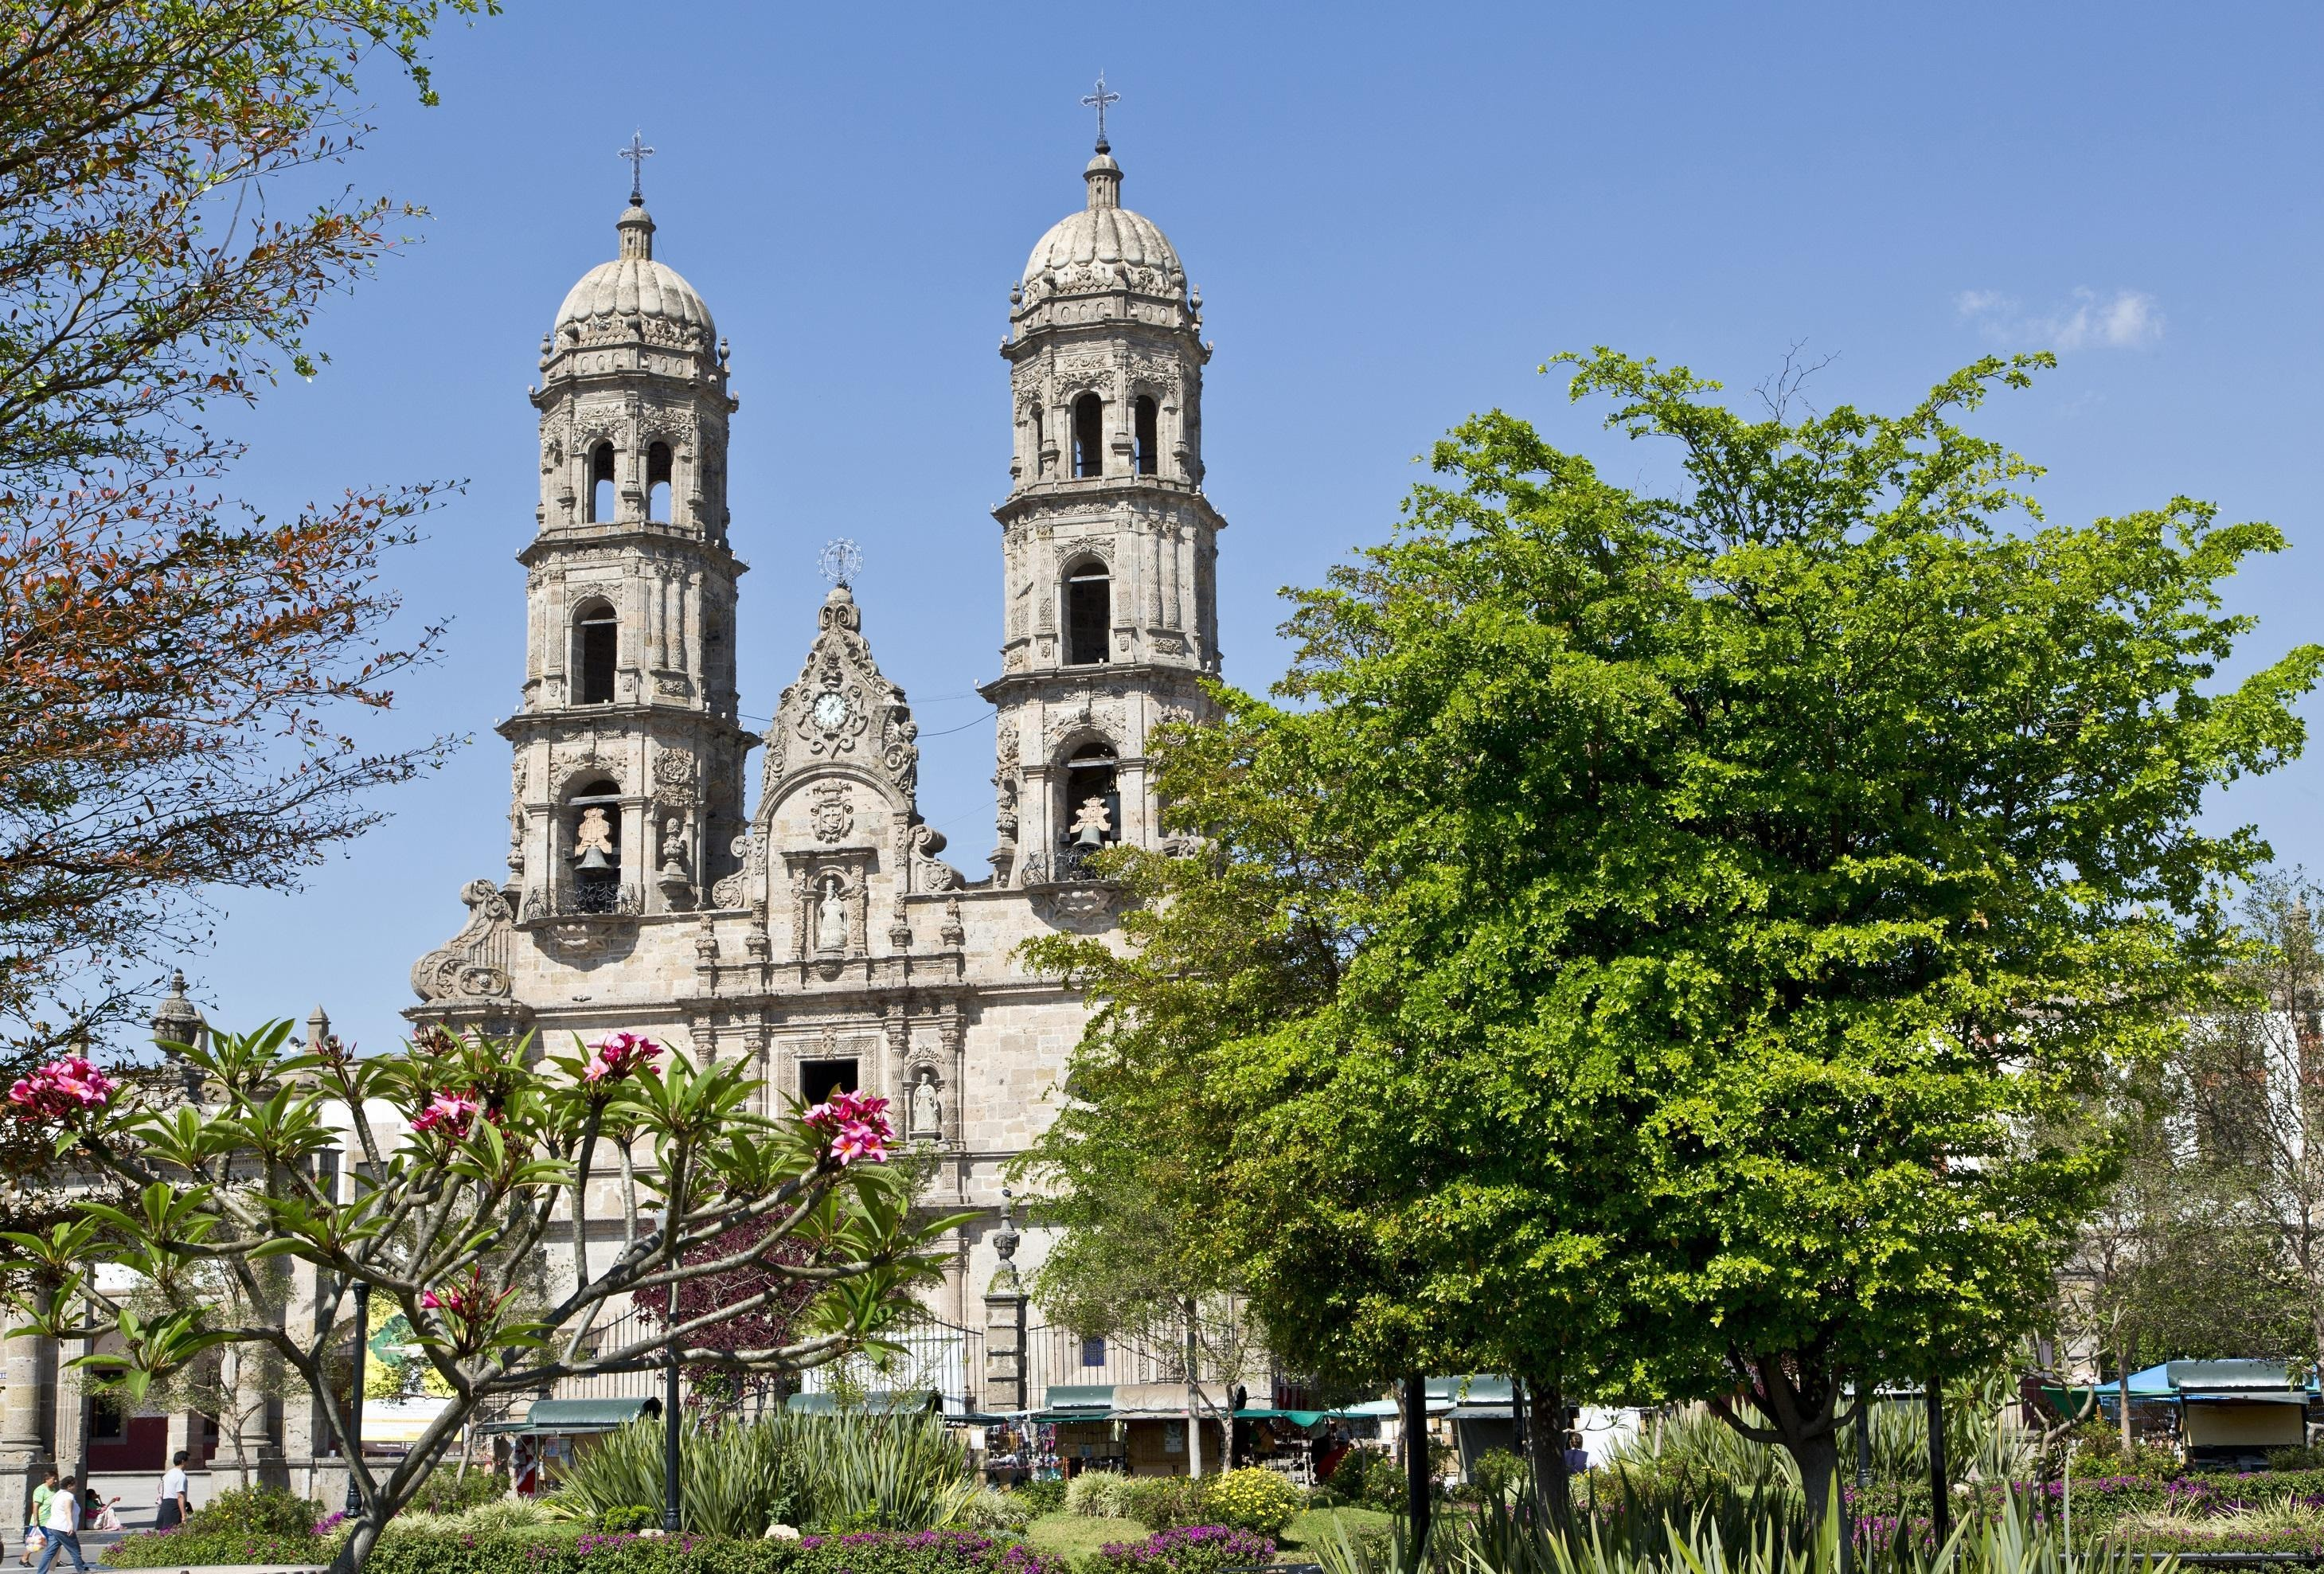 How to Spend 1 Day in Guadalajara